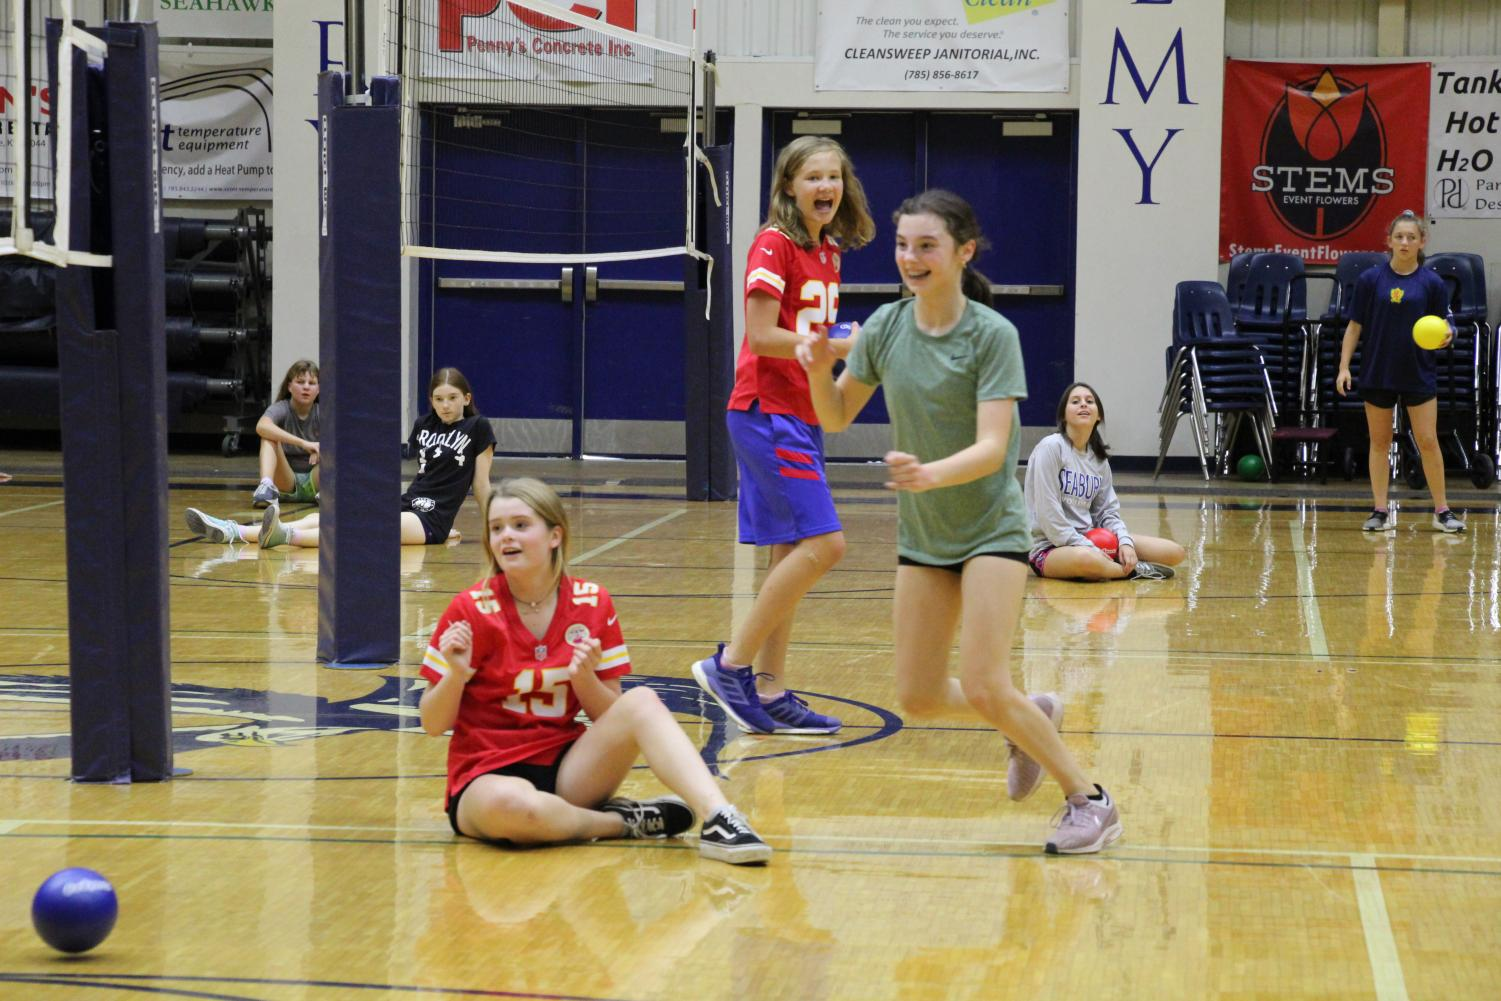 Left+to+Right%3A+Seventh+graders+Hazel+Powers%2C+Makena+Grant+and+Adelle+Spiess+play+dodgeball+during+gym+class.+The+dodgeball+gym+unit+lasted+for+two+weeks.